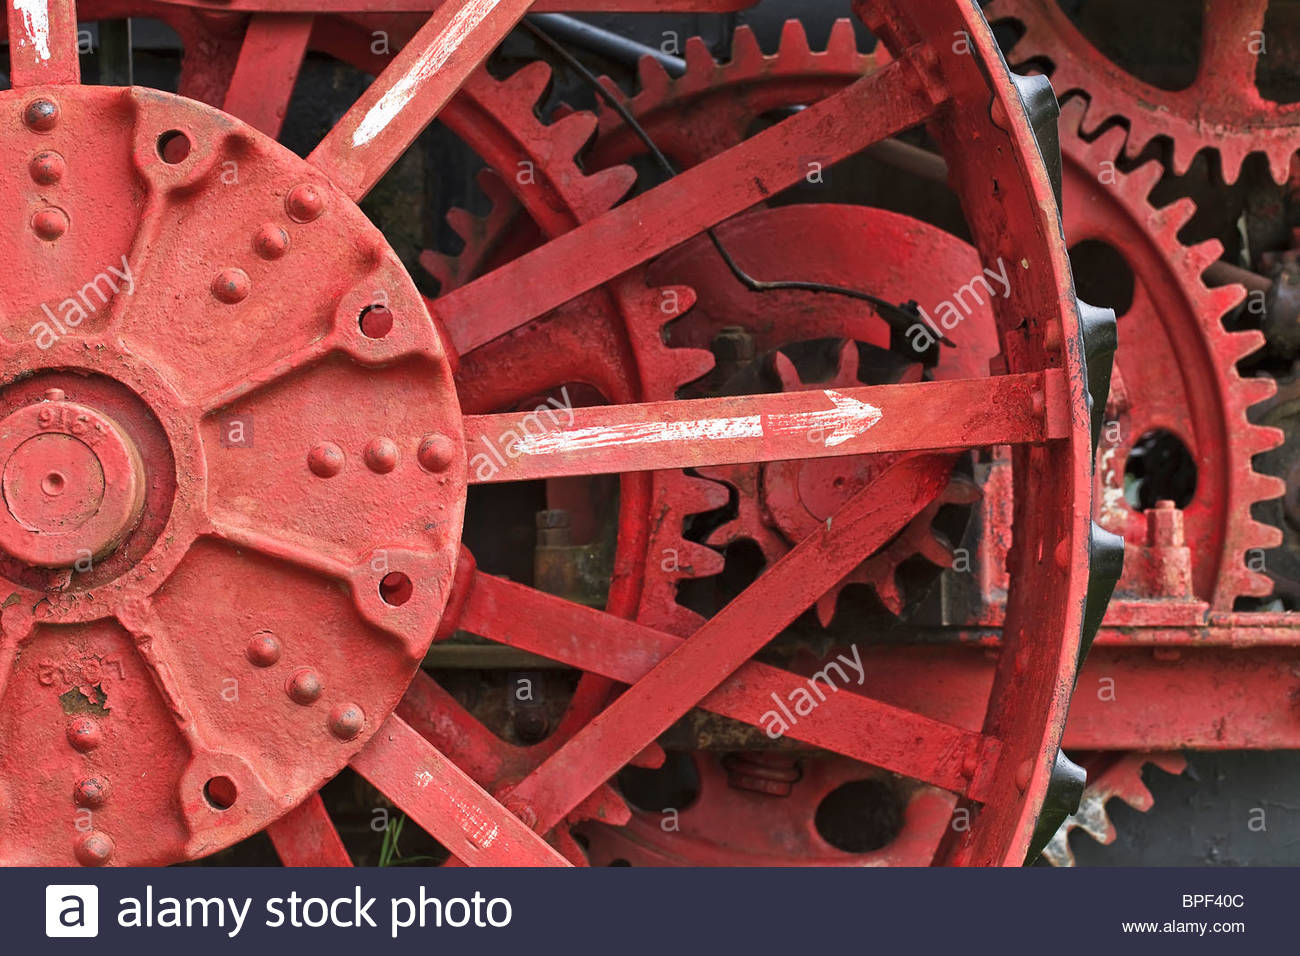 Red gears on a vintage threshing machine. - Stock Image